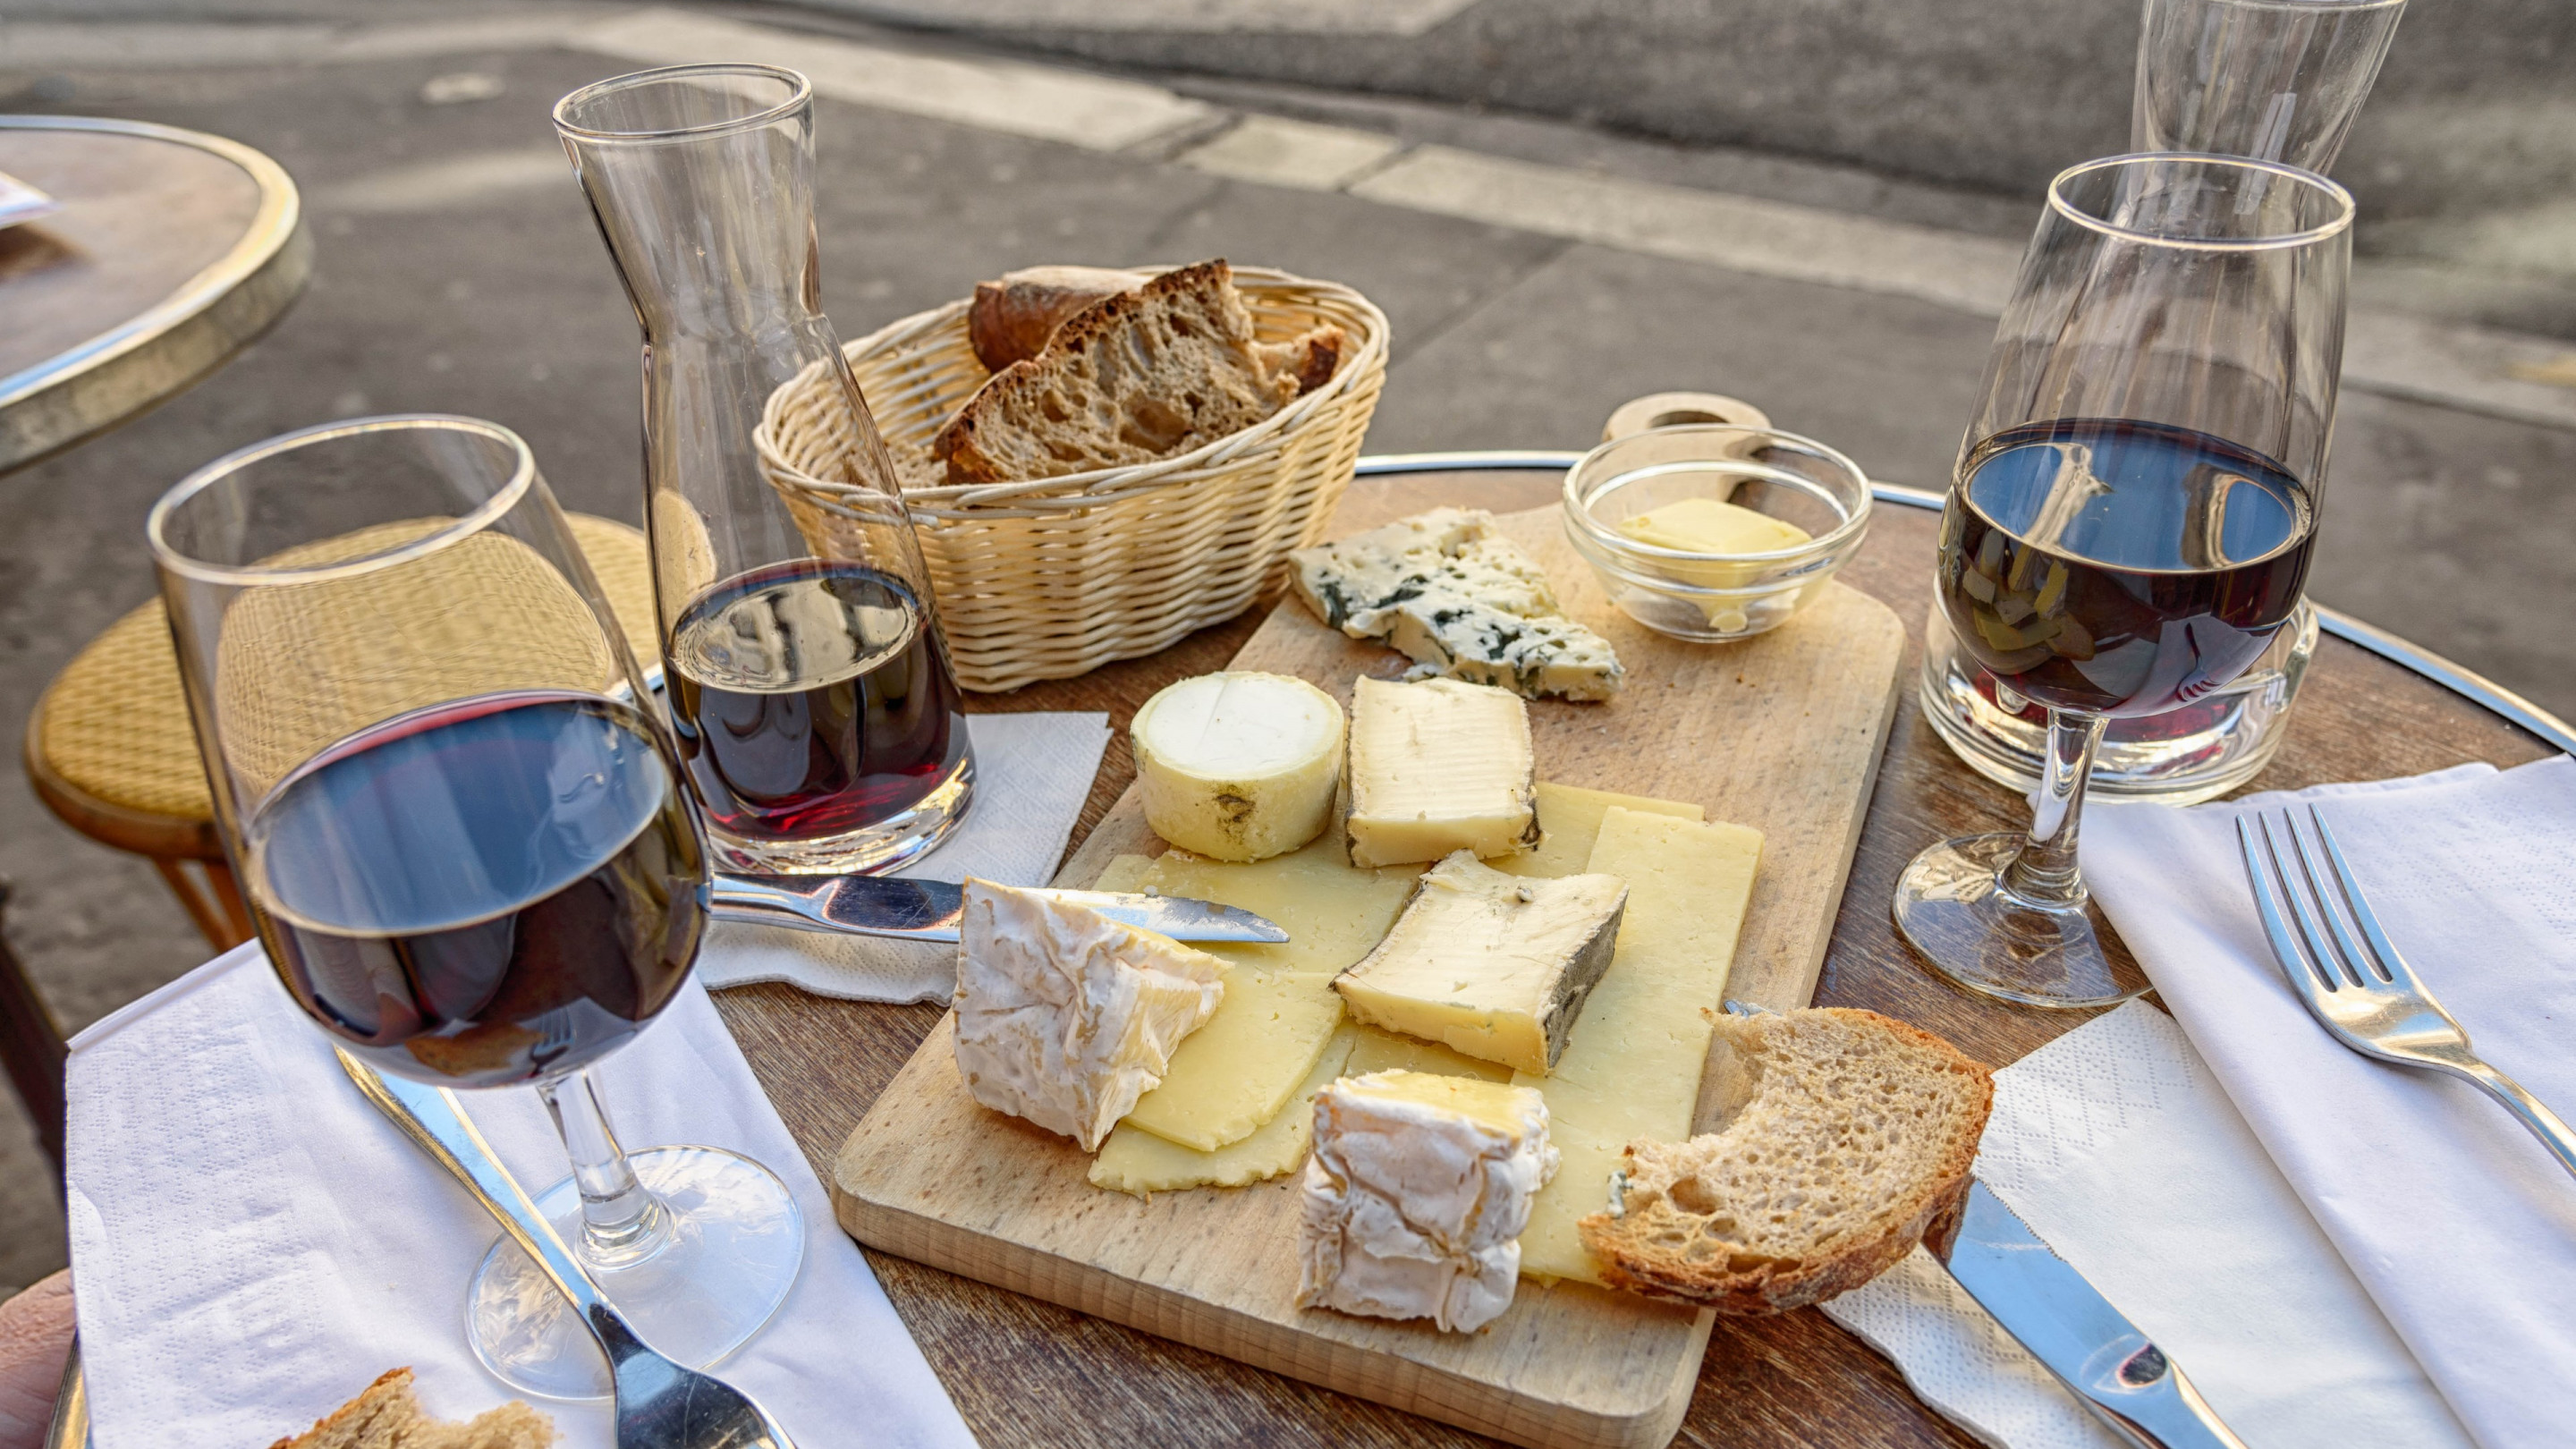 Cheese, wine and bread. Good food and drink wallpaper 2880x1620